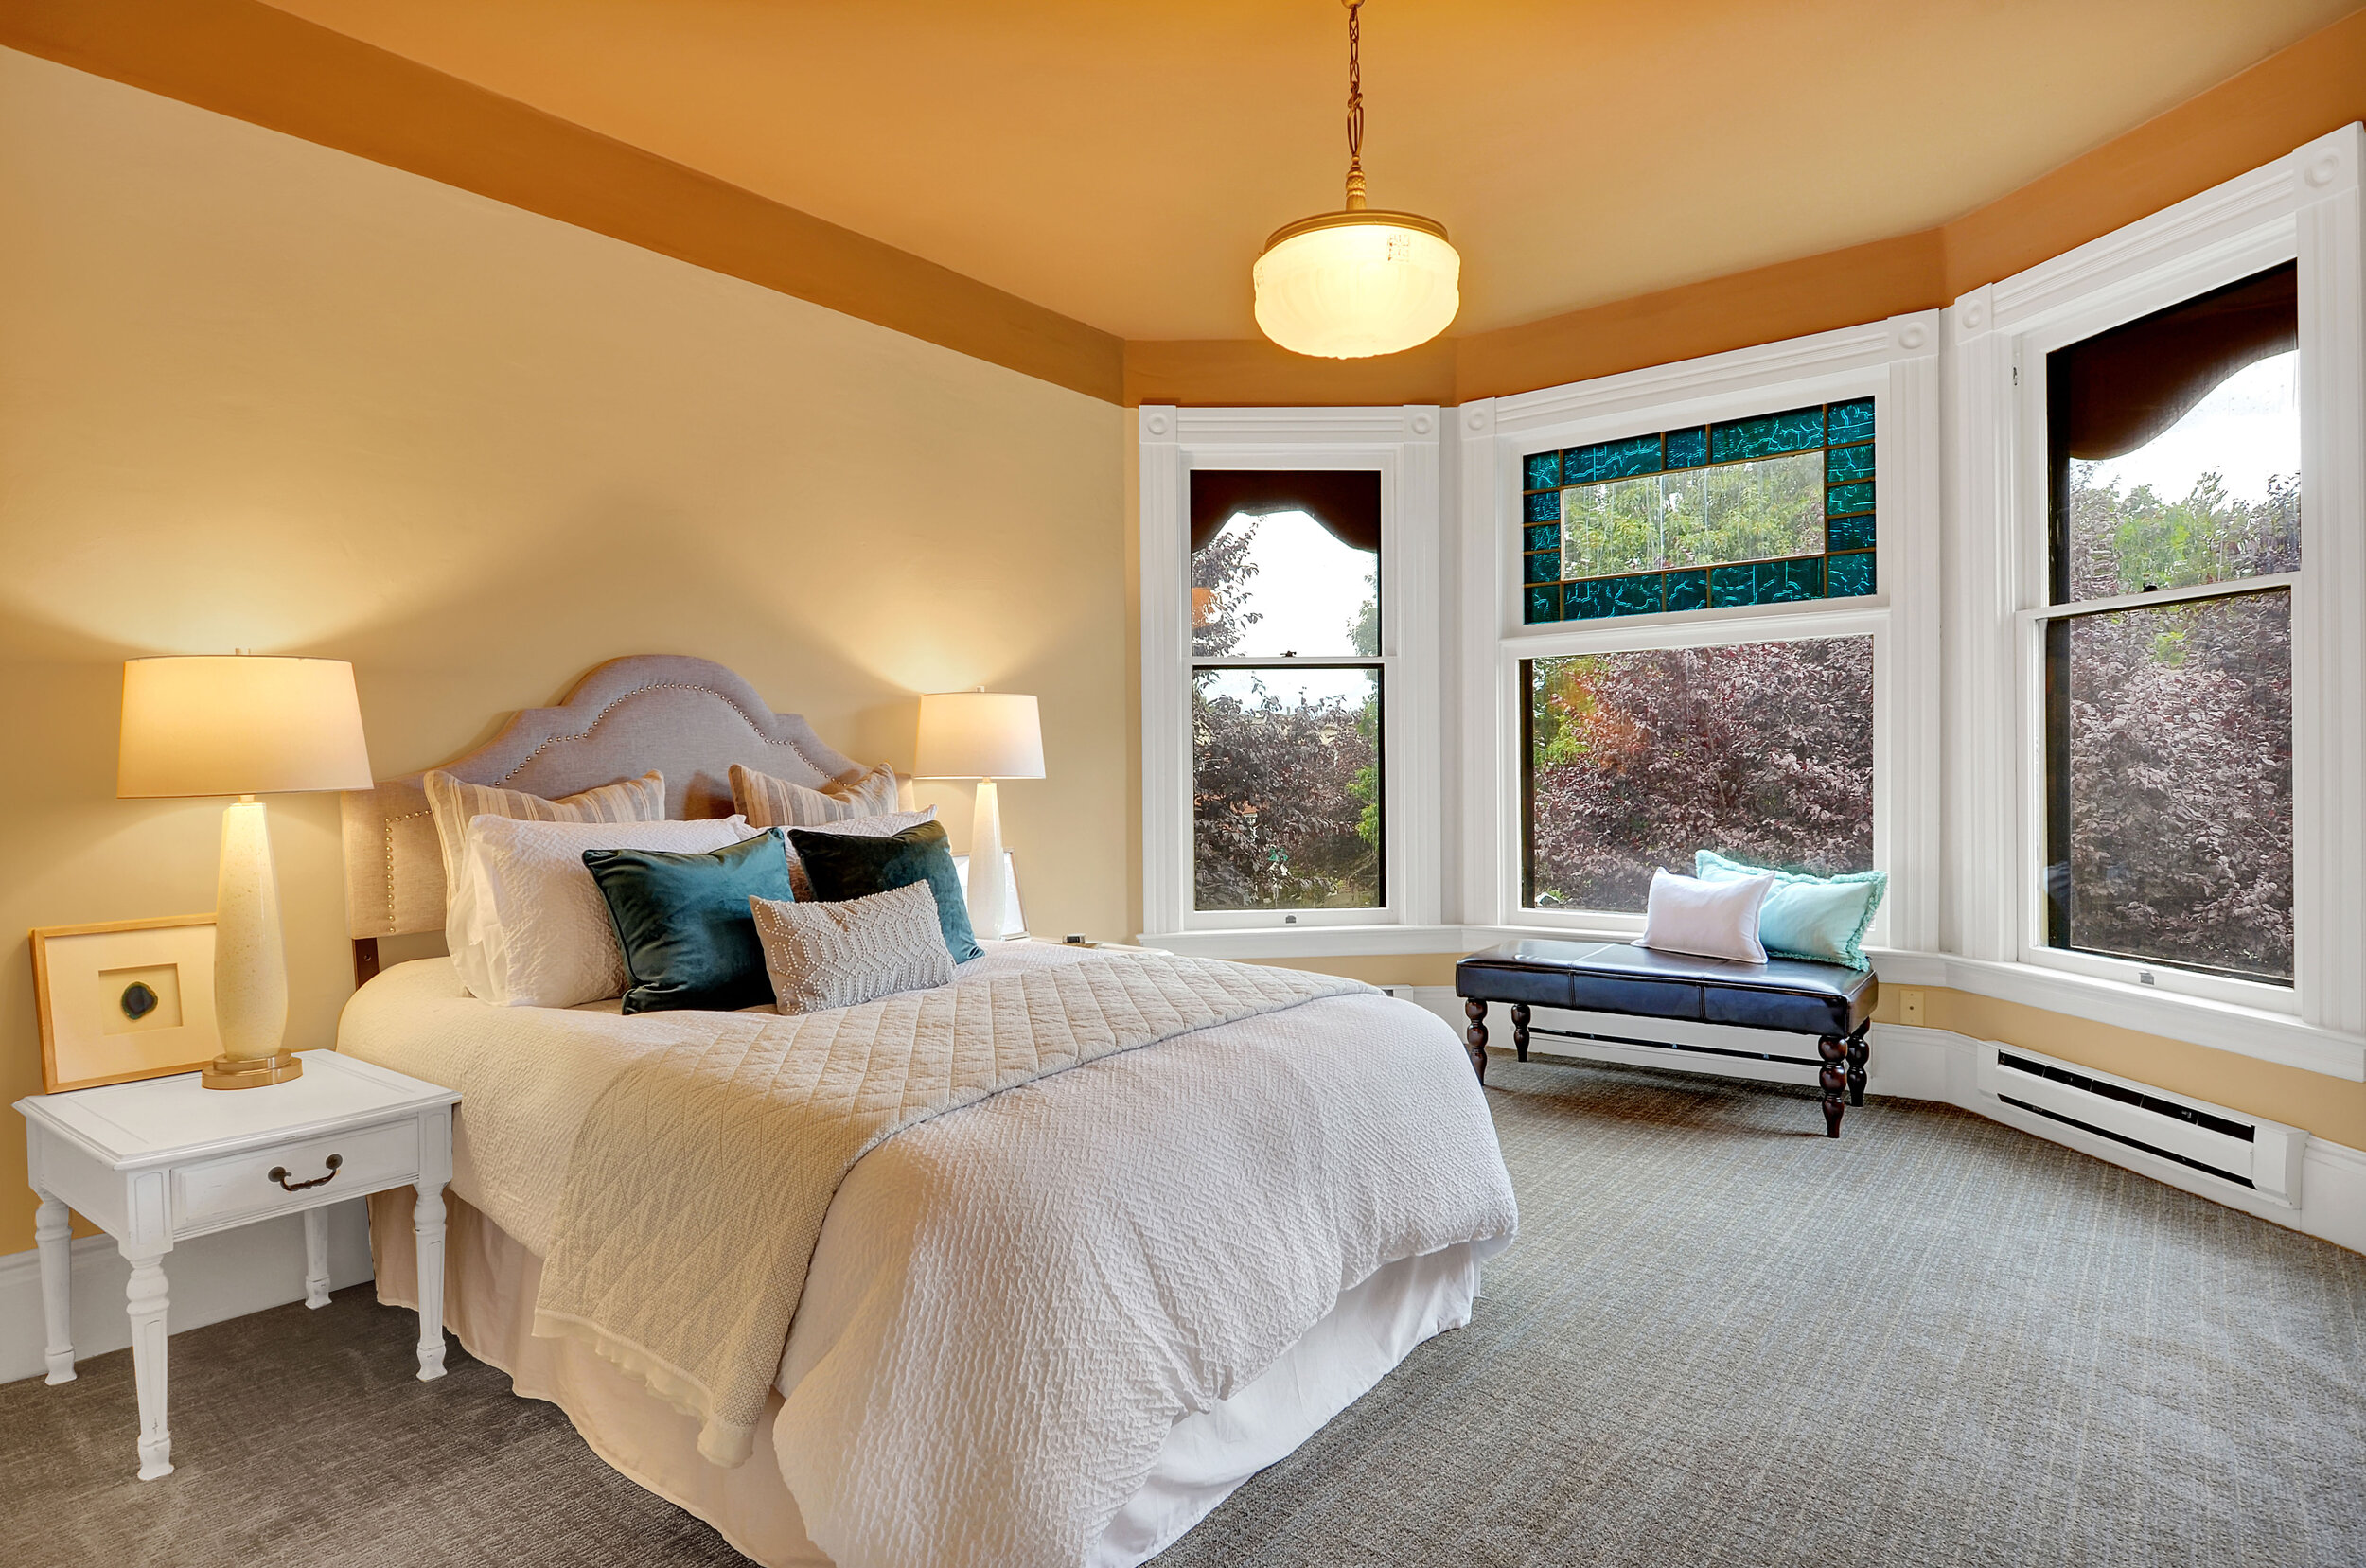 This front, east facing room features bay windows with colored glass, and its own sitting room or dressing room.